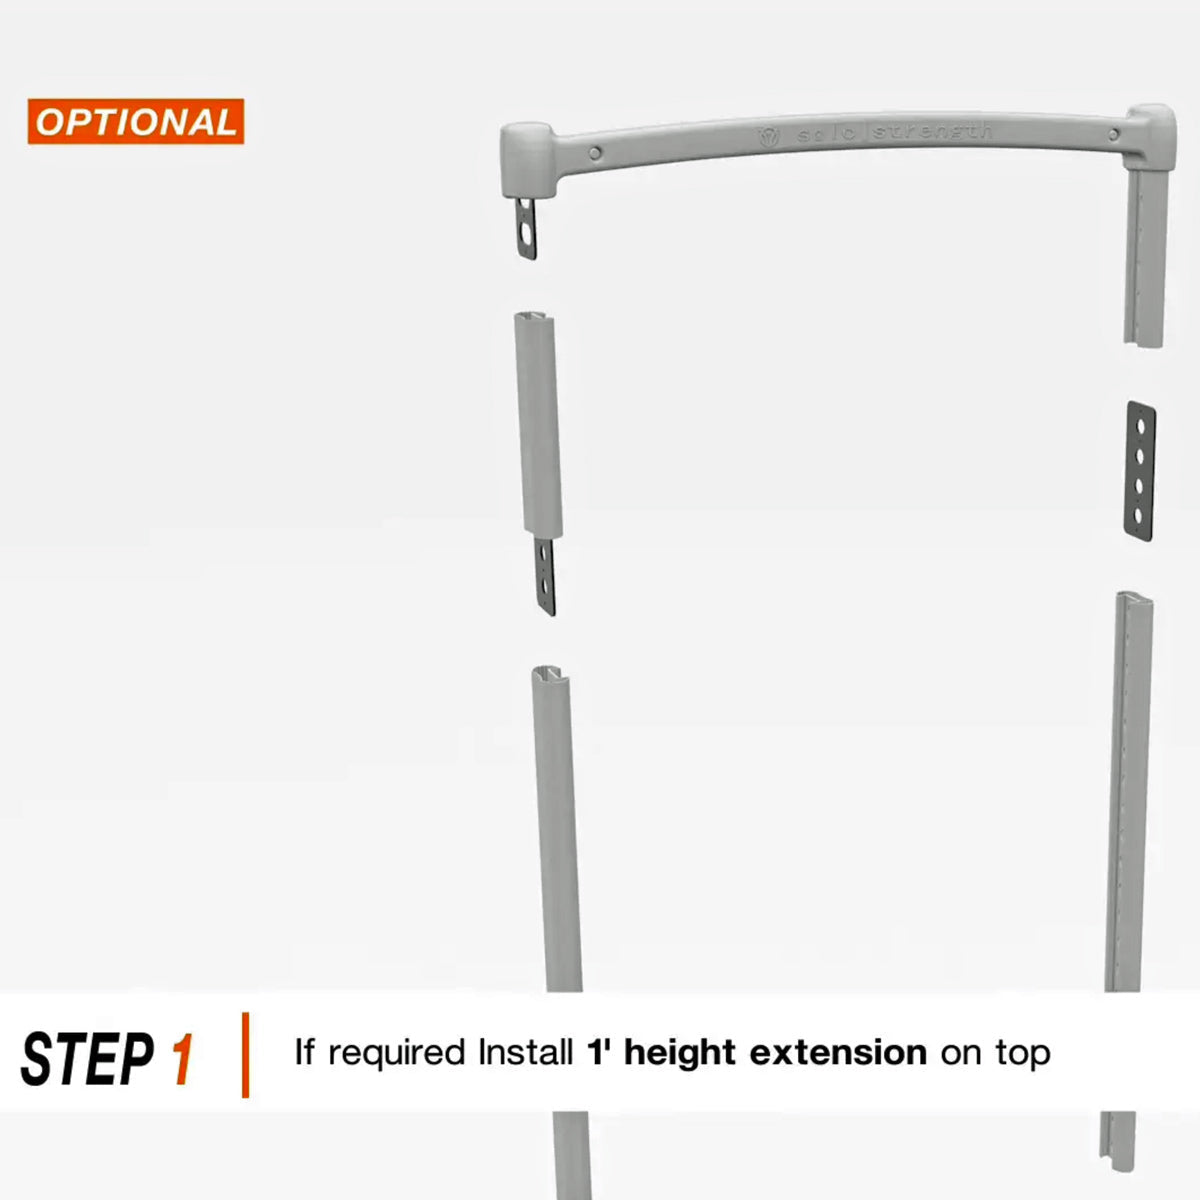 1 Foot Height Extension (Option to get 3rd and 4th level system heights) - SoloStrength